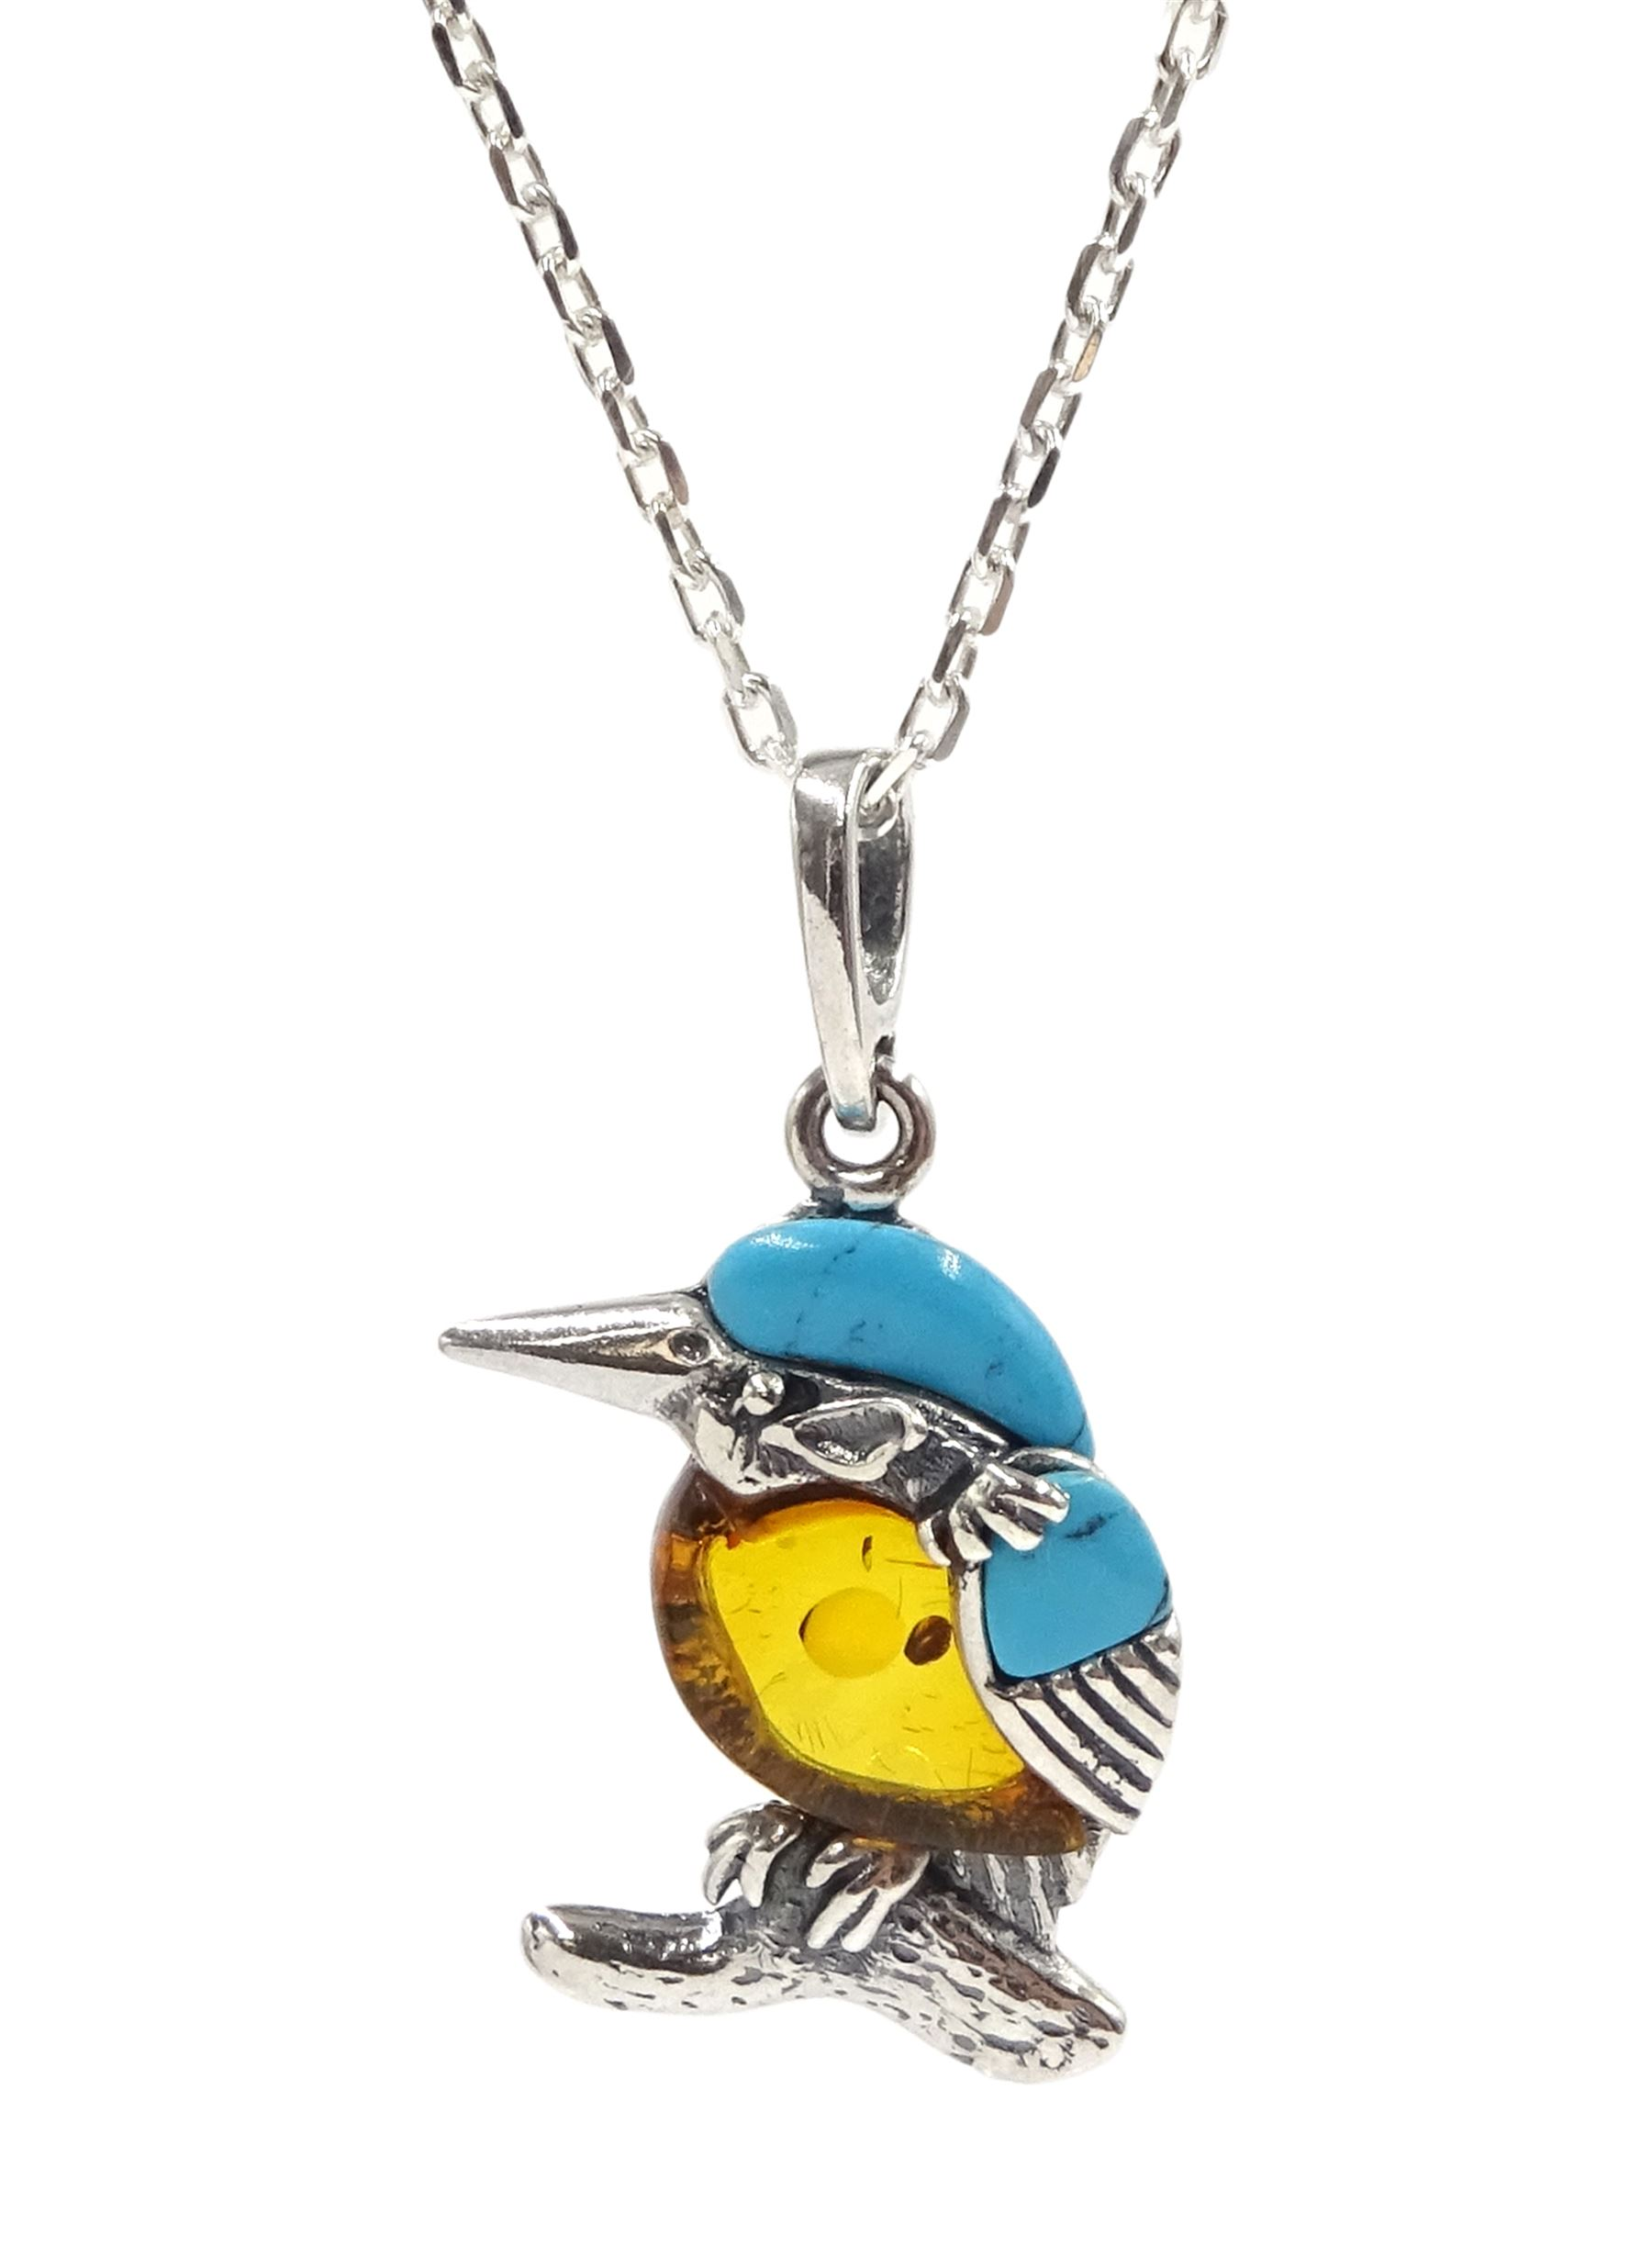 Silver turquoise and amber kingfisher pendant necklace